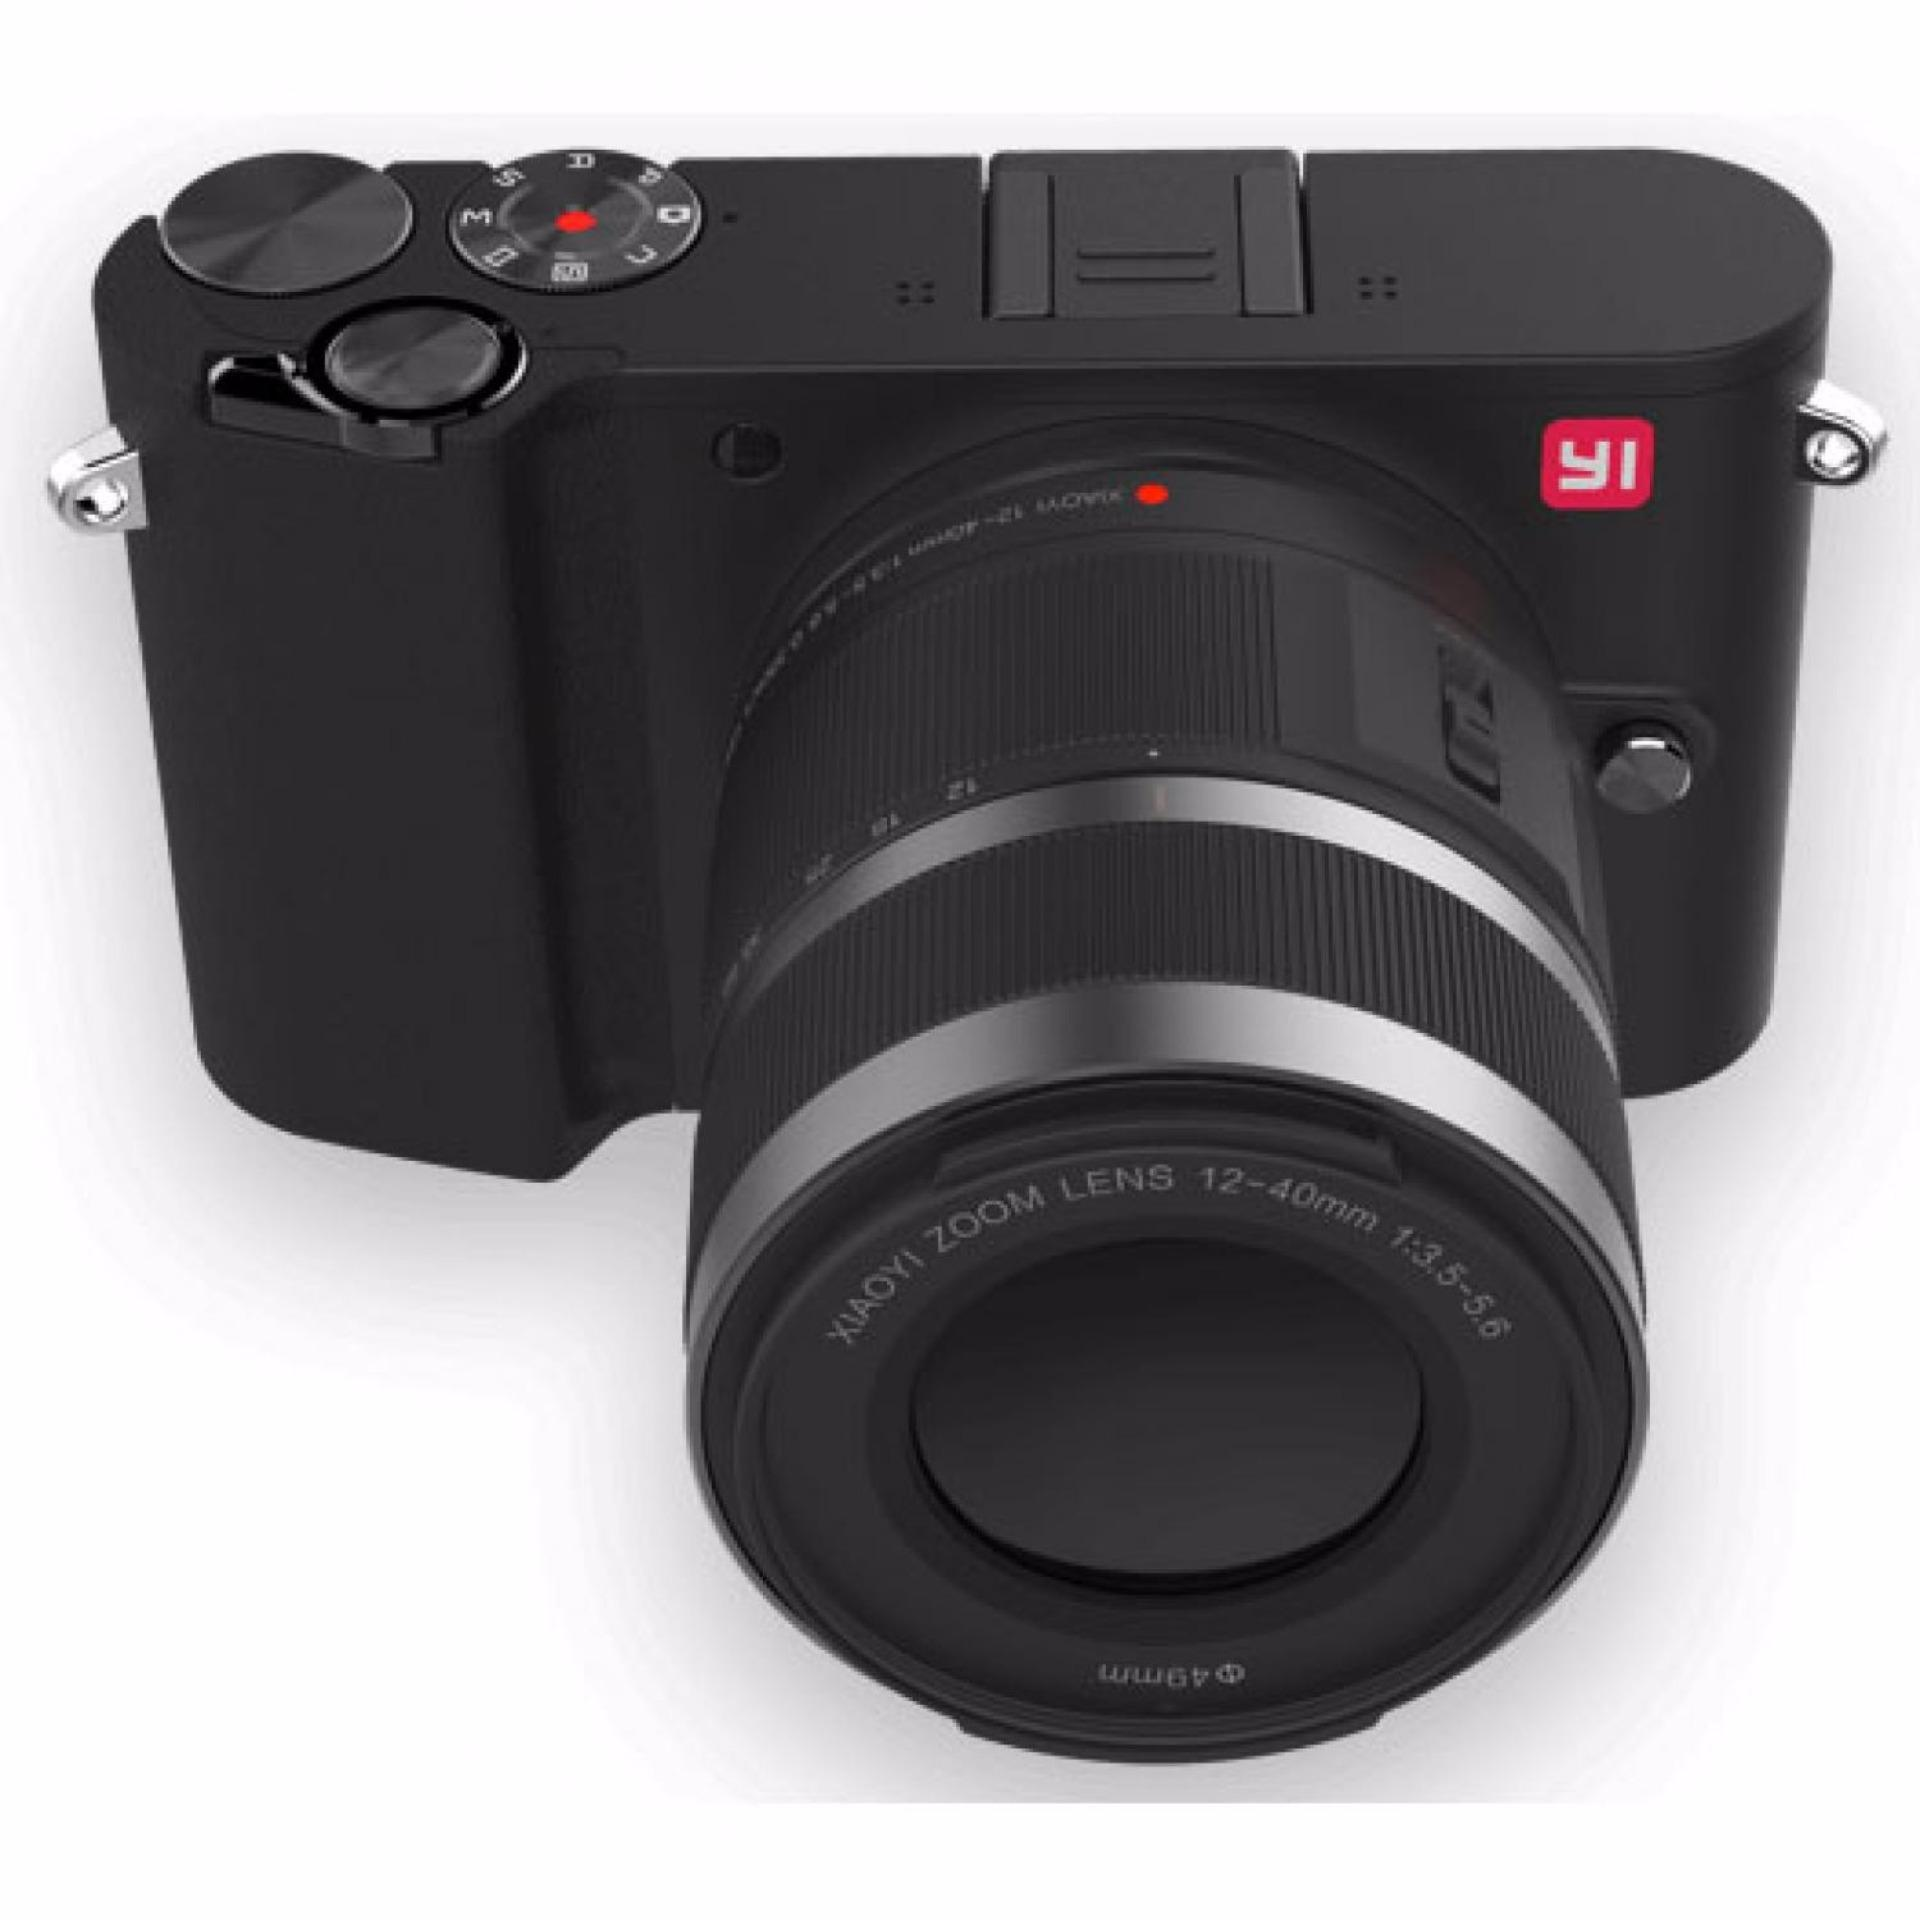 Toko Xiaomi Yi M1 Mirrorless Digital Camera 12 40Mm F3 5 5 6 Lens Xiaomi Di Indonesia